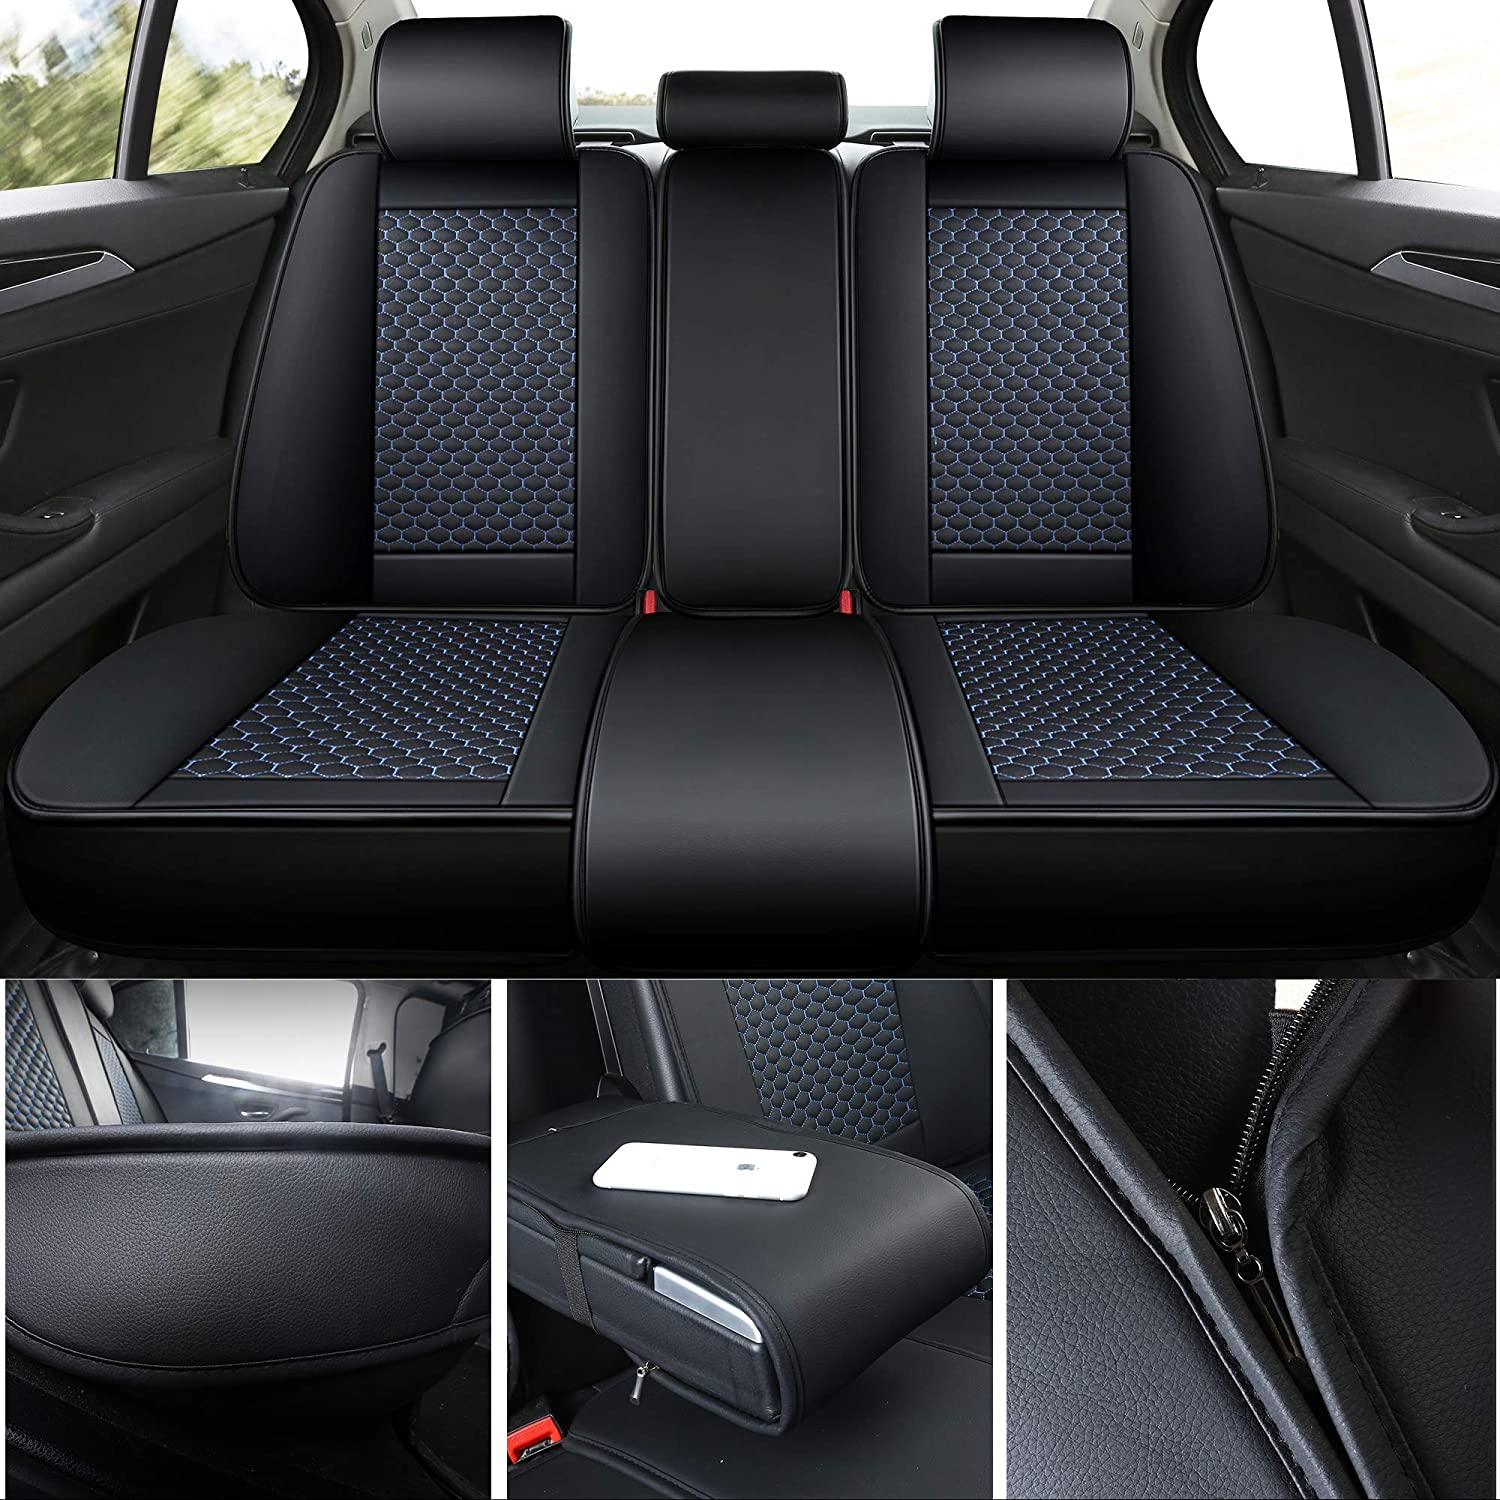 INCH EMPIRE Car Seat Cover 2 Front-Football Liner Half Perforated Synthetic Leather Cushion Fit for Accent Elantra Sonata Tucson Kona EV Liberty Patriot Renegade Compass Grand Cherokee 2 Front Black